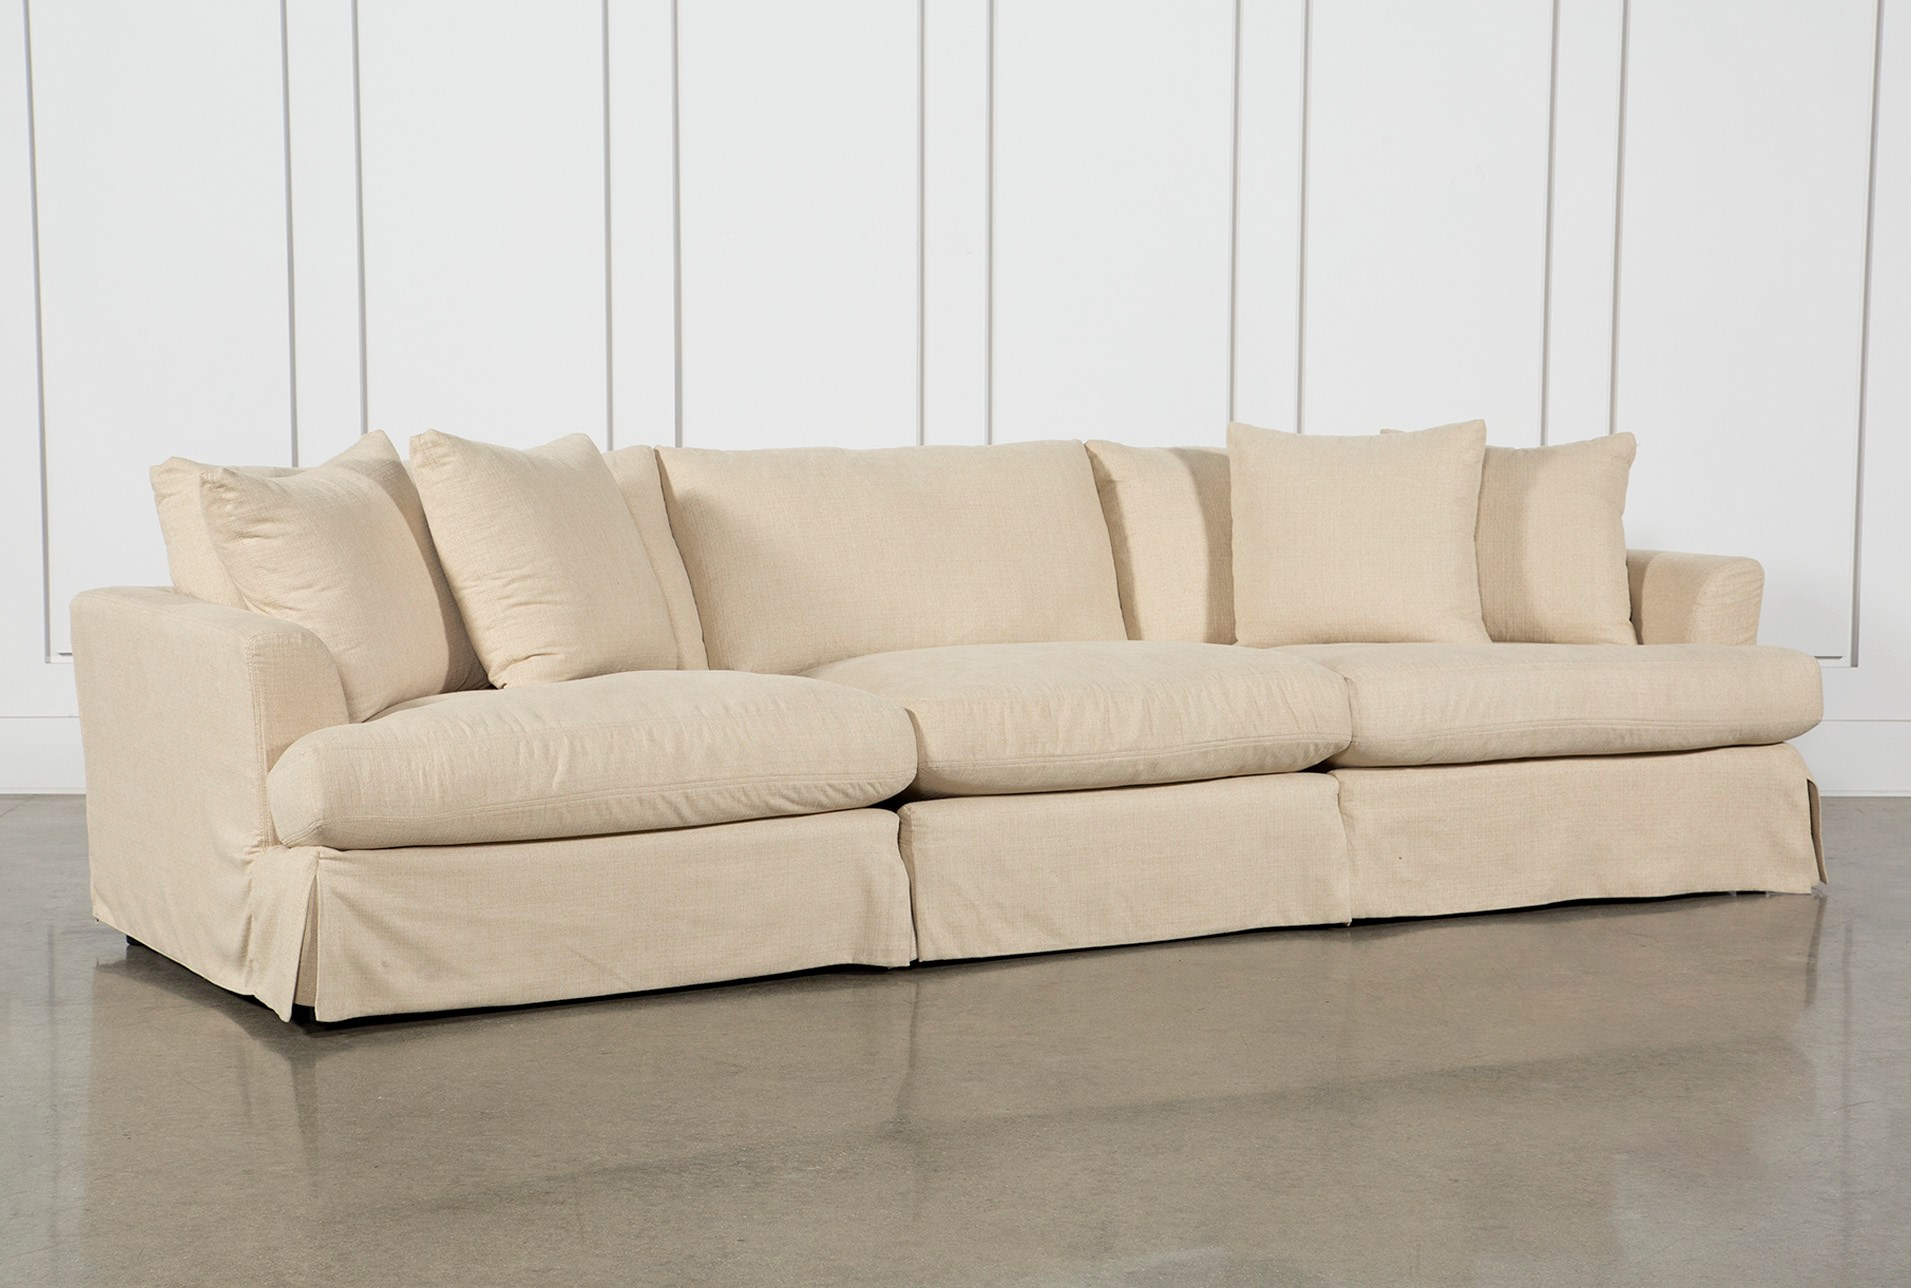 Solano Slipcovered 3 Piece Sofa Living Spaces